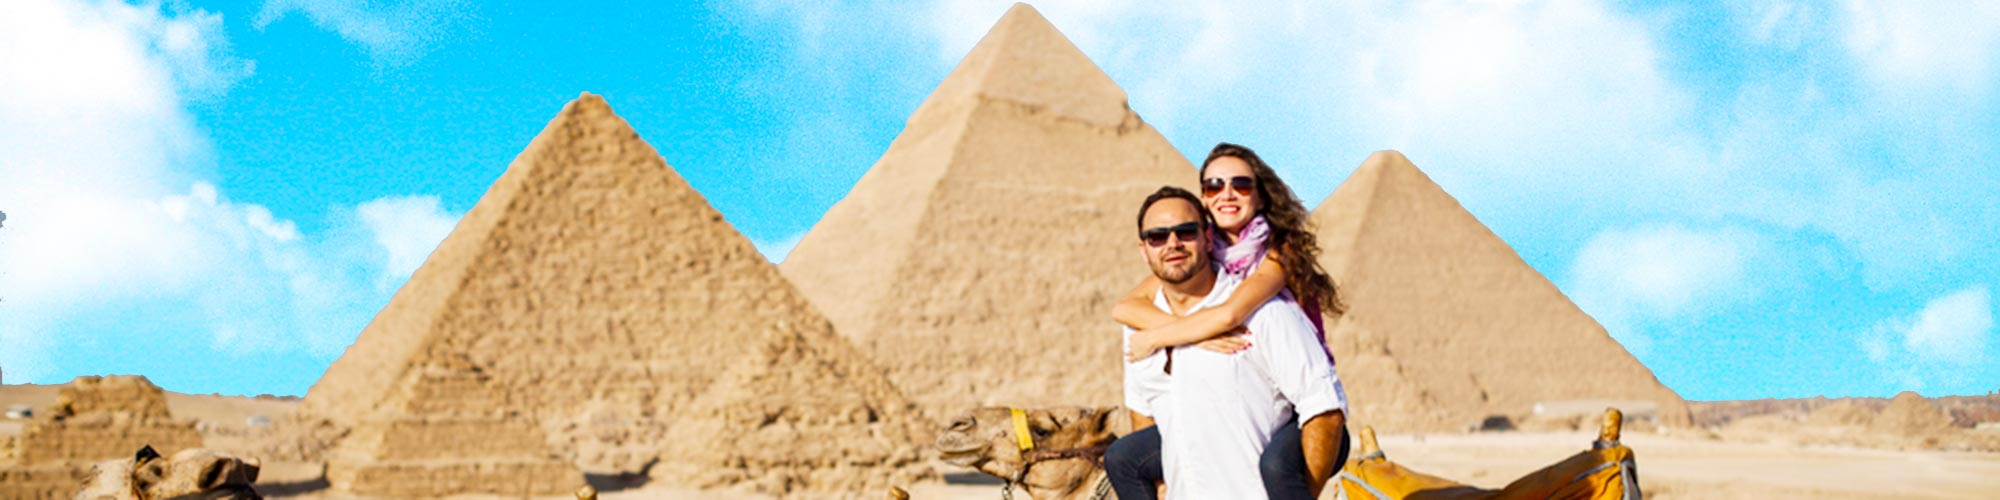 Giza Pyramids - Hurghada Excursions Prices - Tours from Hurghada